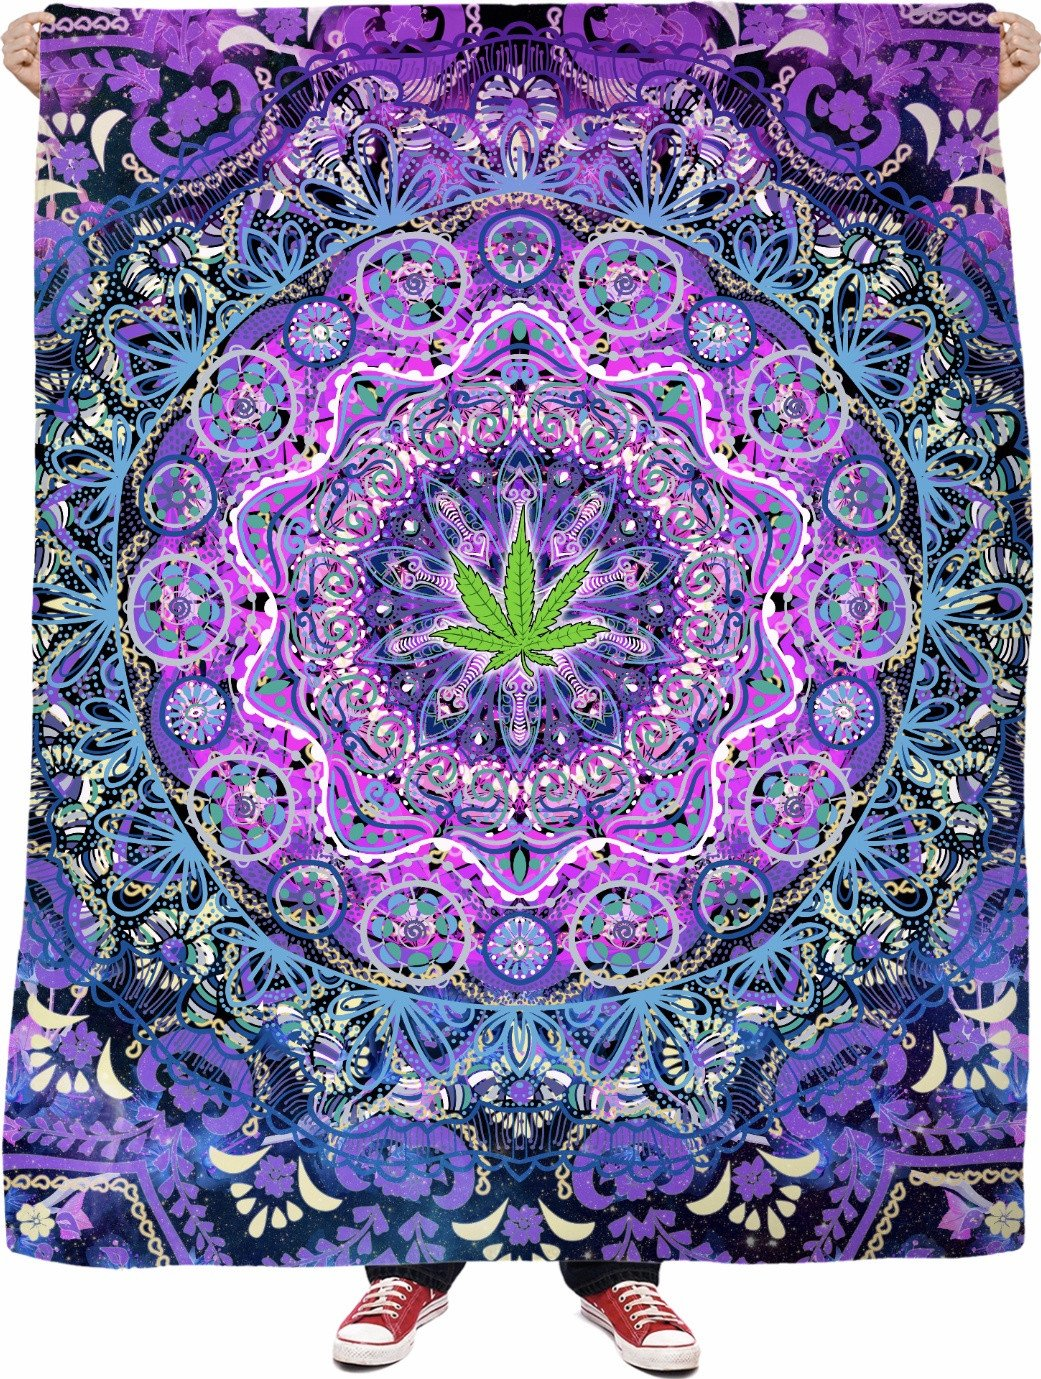 Nature's Medicine - Fleece Blanket